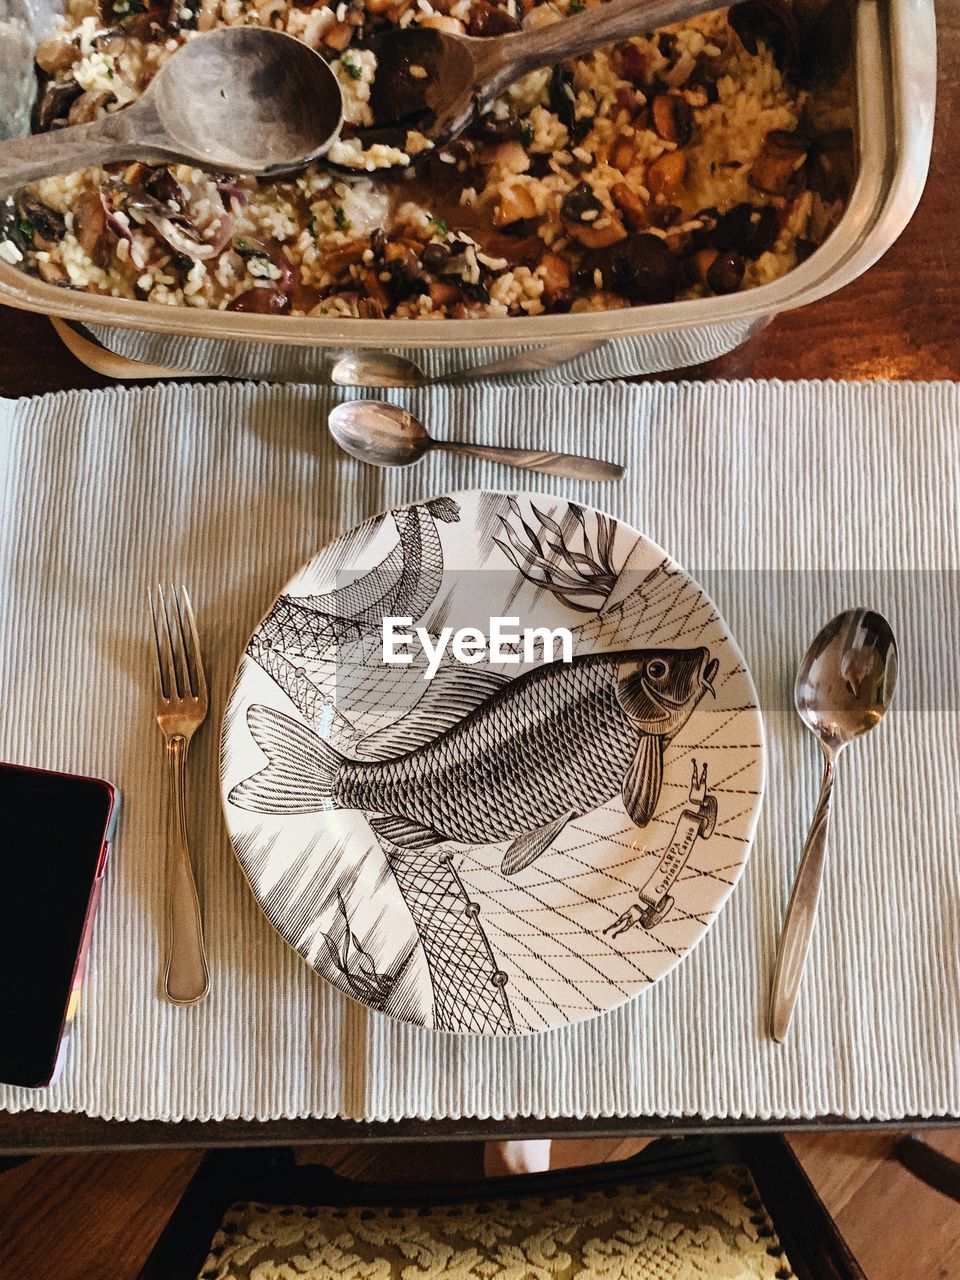 table, kitchen utensil, eating utensil, spoon, indoors, wood - material, still life, no people, food and drink, high angle view, napkin, food, household equipment, fork, close-up, freshness, directly above, place setting, knife, textile, table knife, setting, silver colored, place mat